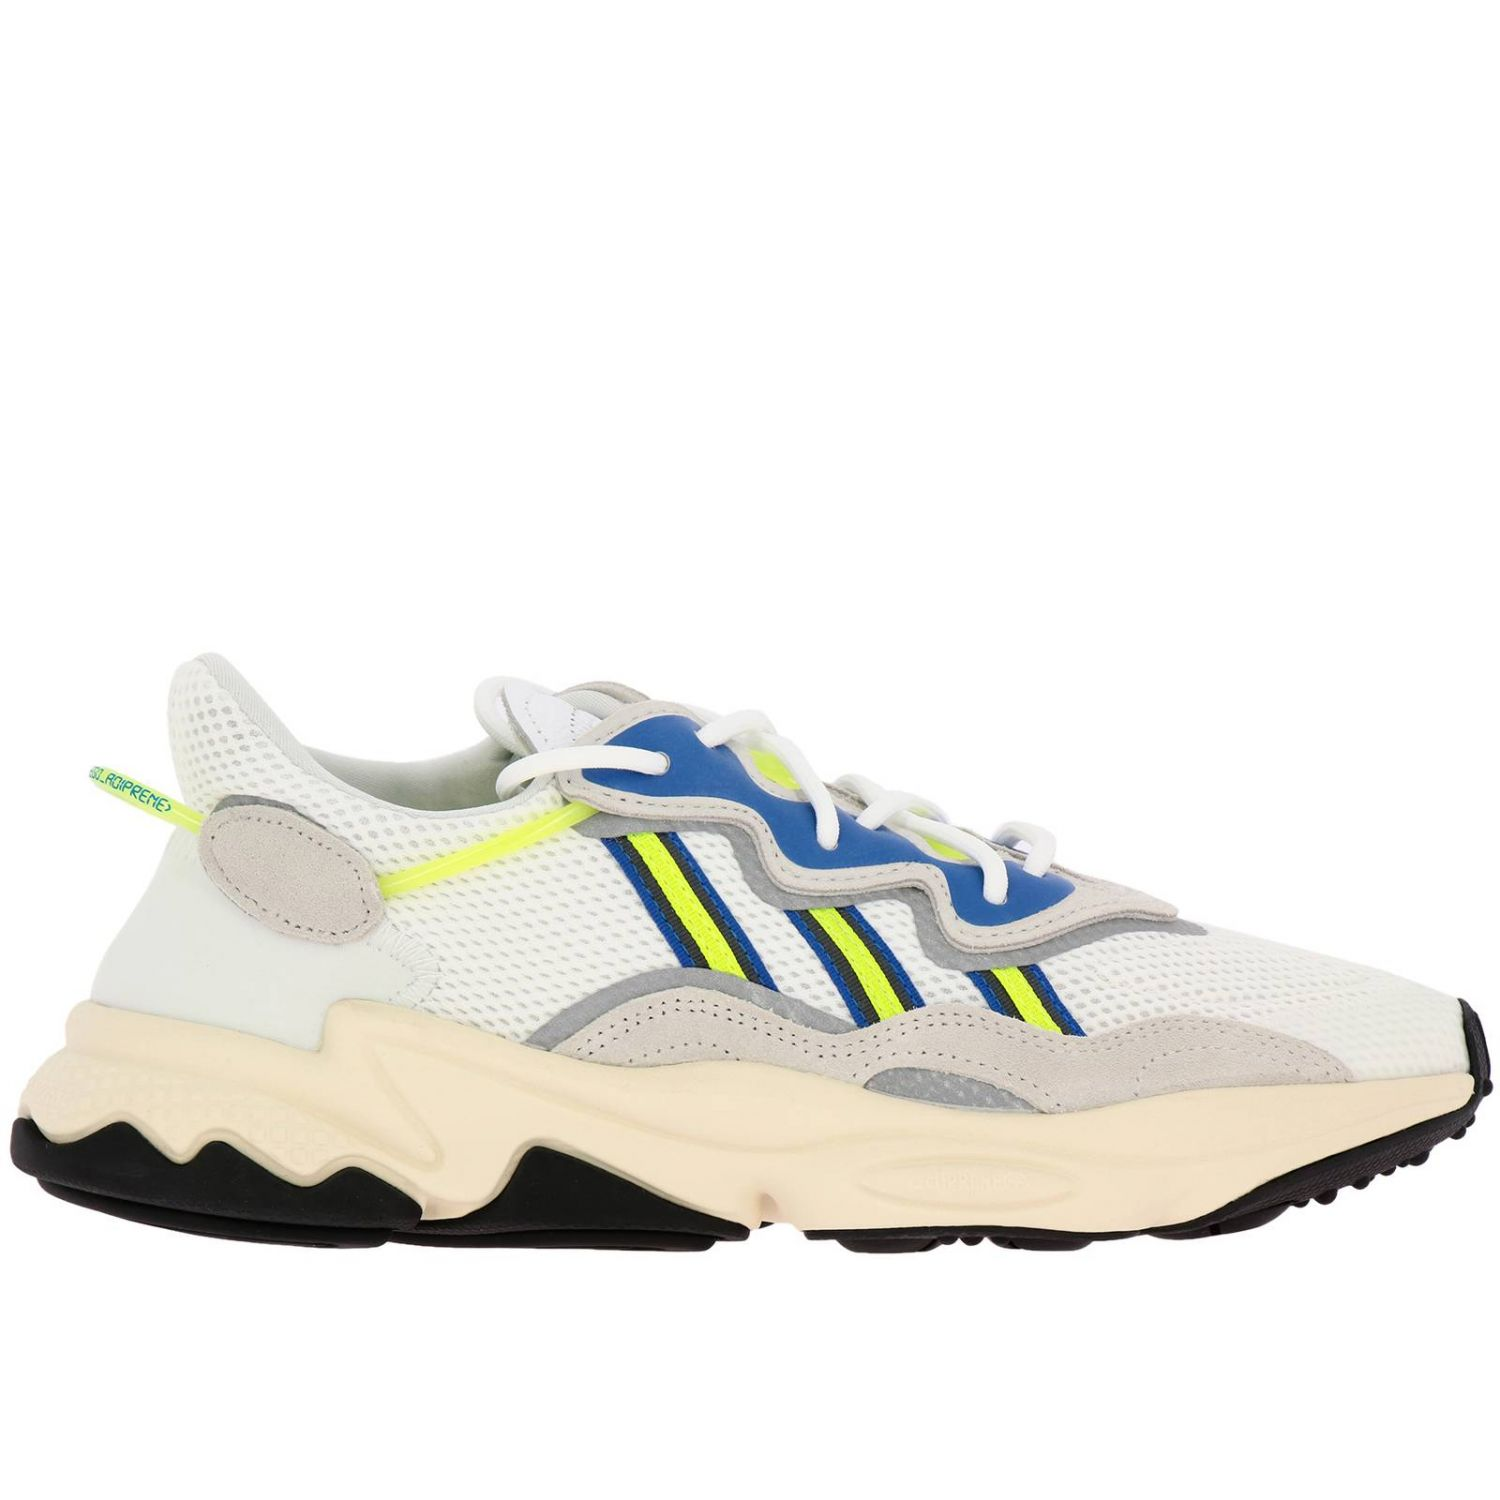 Trainers Adidas Originals: Sneakers Ozweego Adidas Originals in suede and fluo rubber white 1